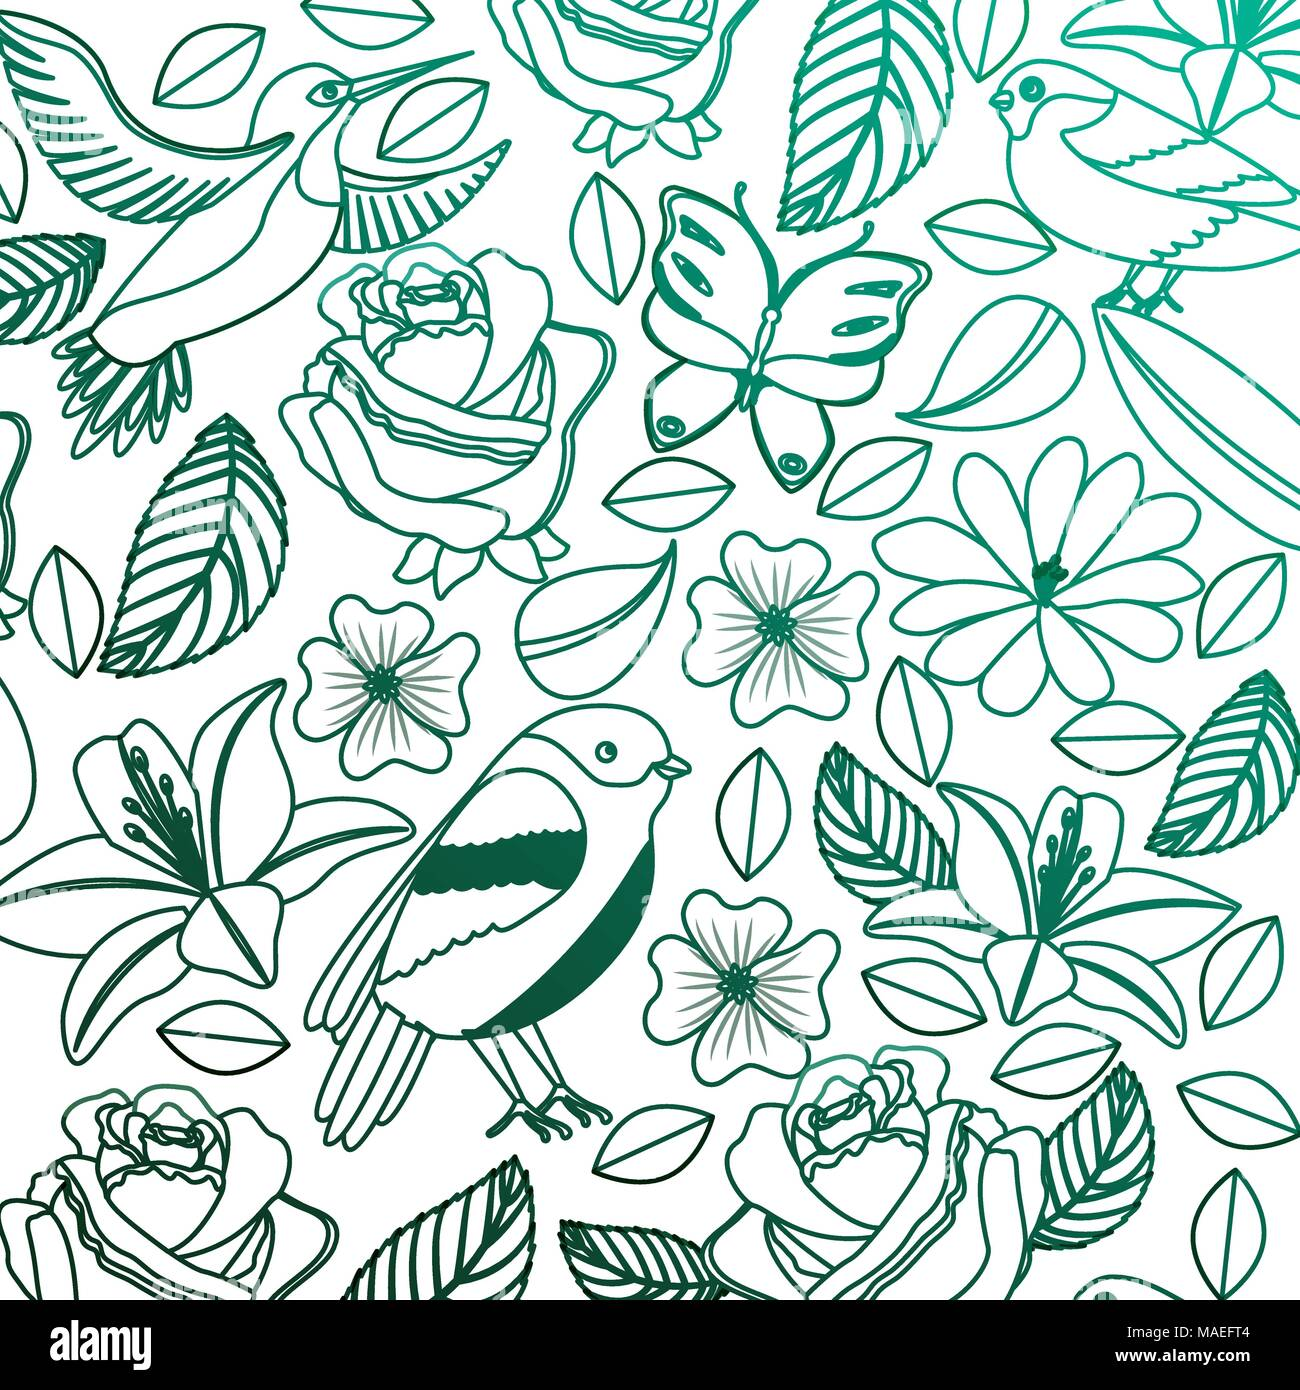 Background vintage délicates fleurs papillons oiseaux vector illustration couleur vert dégradé Illustration de Vecteur